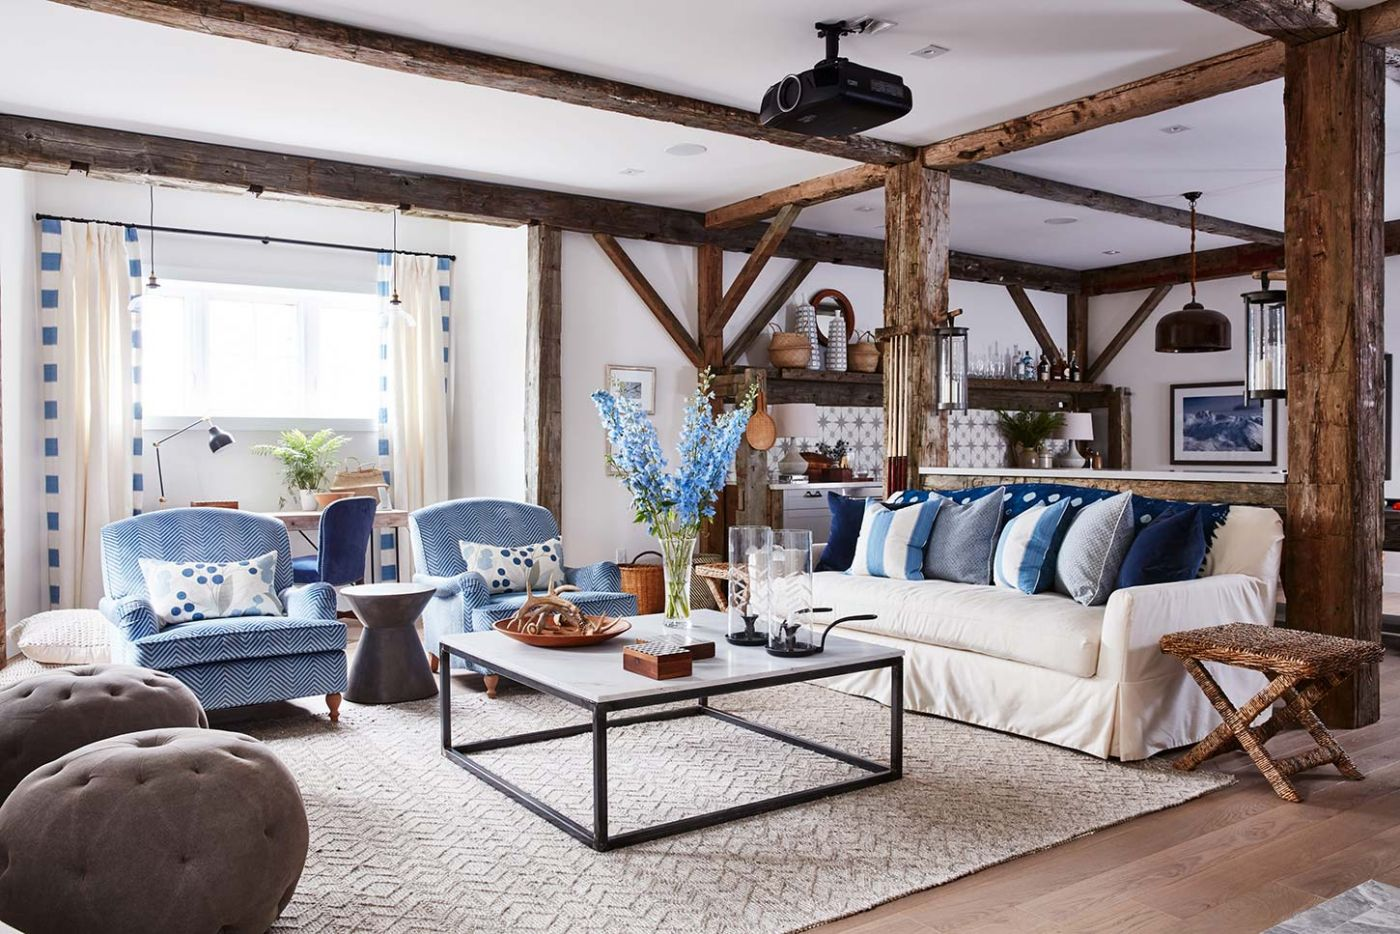 Sarah Richardson's media room in her off the grid farmhouse. White slipcovered sofa and blue accents with rustic decor. Interior Design Ideas: Cottage, Farmhouse & Coastal Style Furniture.